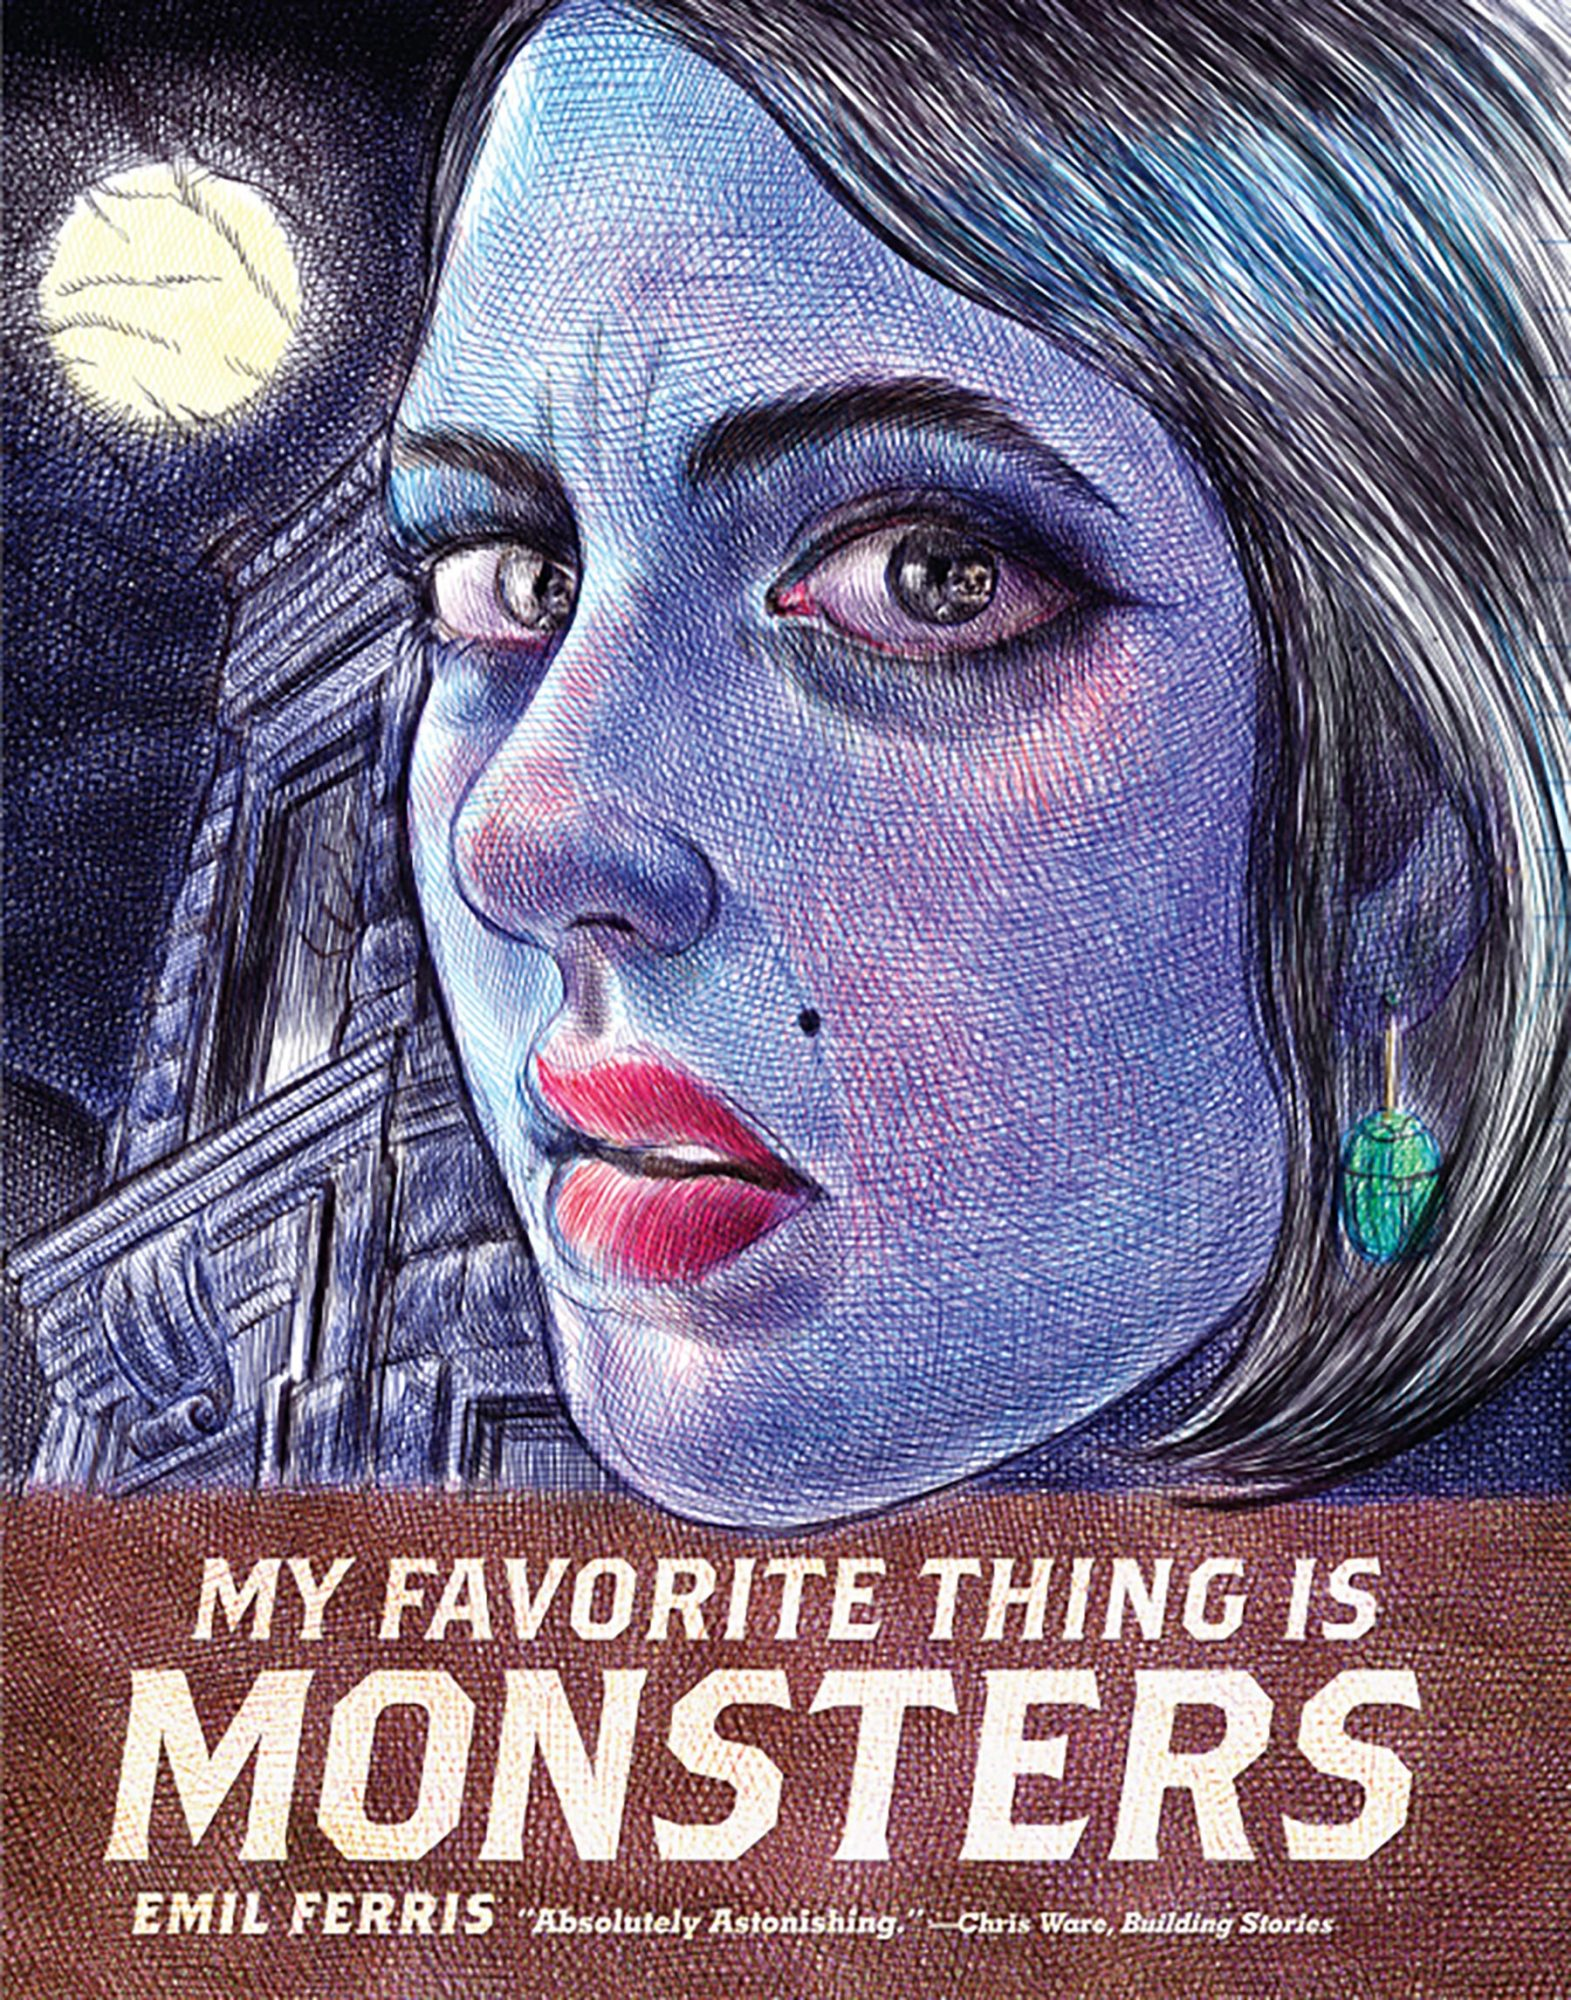 Best Graphic Novel: My Favorite Thing Is Monsters (Fantagraphics)